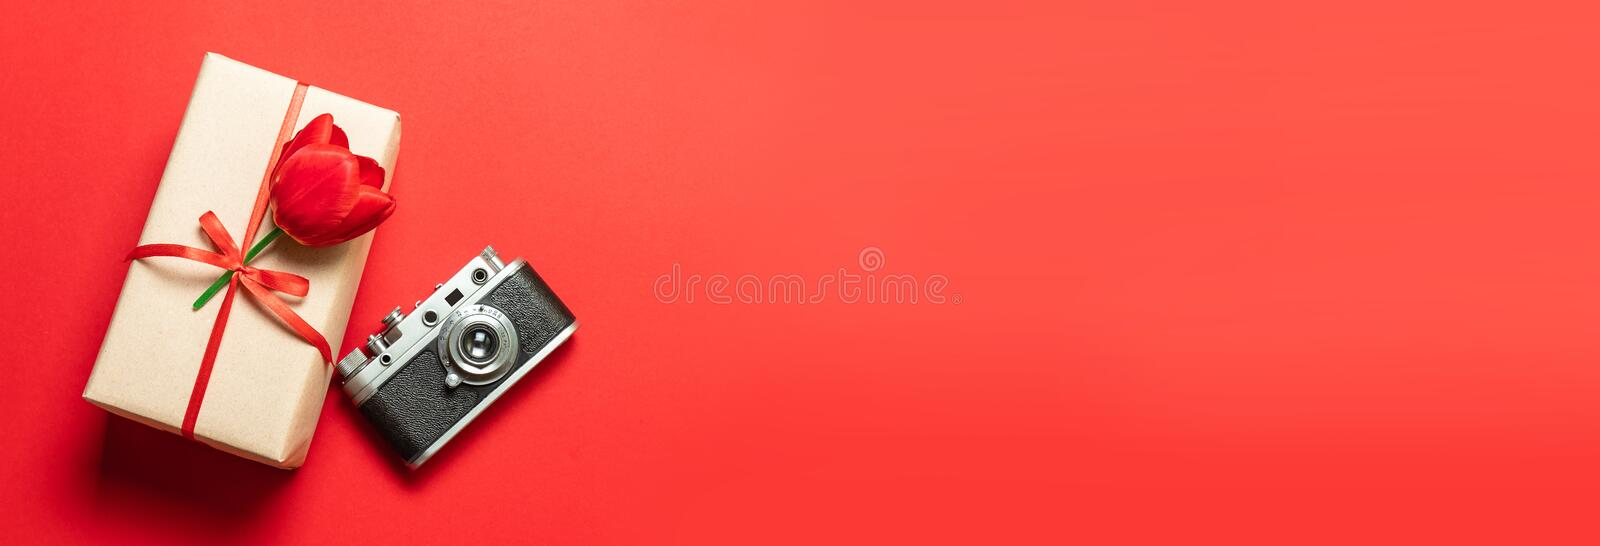 Top view of travel or vacation concept. Flat lay of the camera and a gift box with a red ribbon. T. Flat lay of the camera and a gift box with a red ribbon. Top royalty free stock image